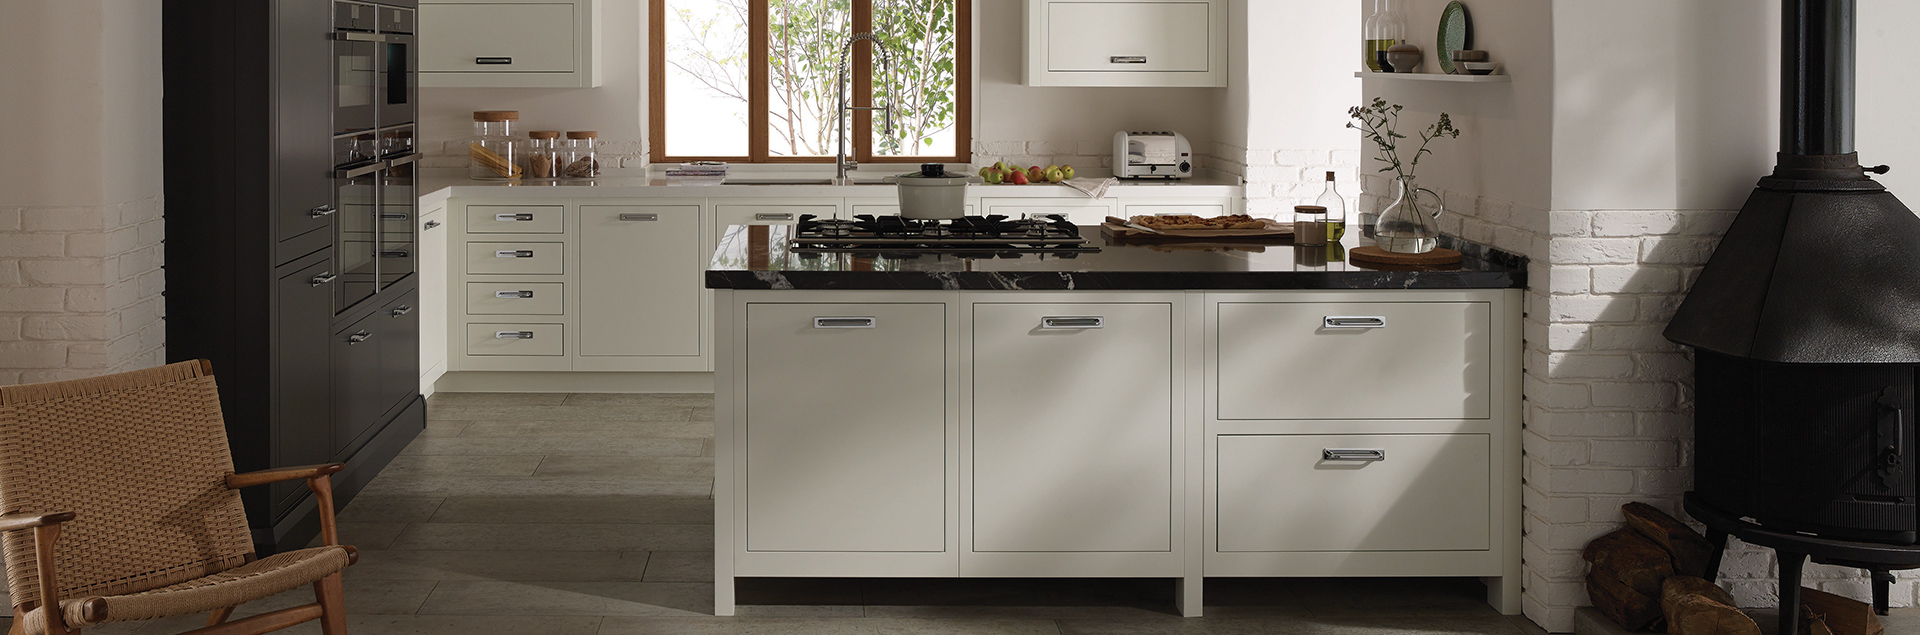 A slab inframe kitchen painted in two tones. The main sections of the kitchen are painted in a porcelain finish with the tall housing cabinets finished in a graphite paint colour. The surfaces are also a mix of natural marble and quartz.